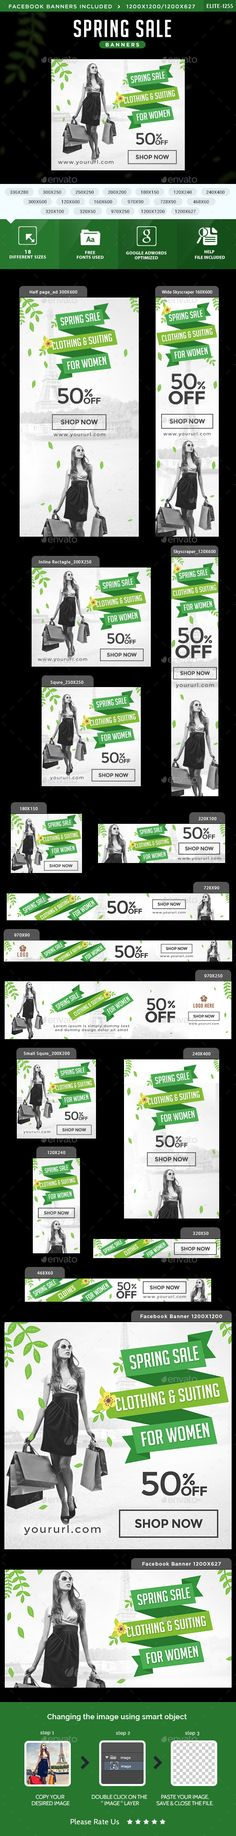 Buy Spring Sale Banners by Hyov on GraphicRiver. Promote your Products and services with this great looking Banner Set. Leaflet Design, Ad Design, Signage Design, Graphic Design, Education Banner, Education Posters, Page Layout Design, Rollup Banner, Summer Banner